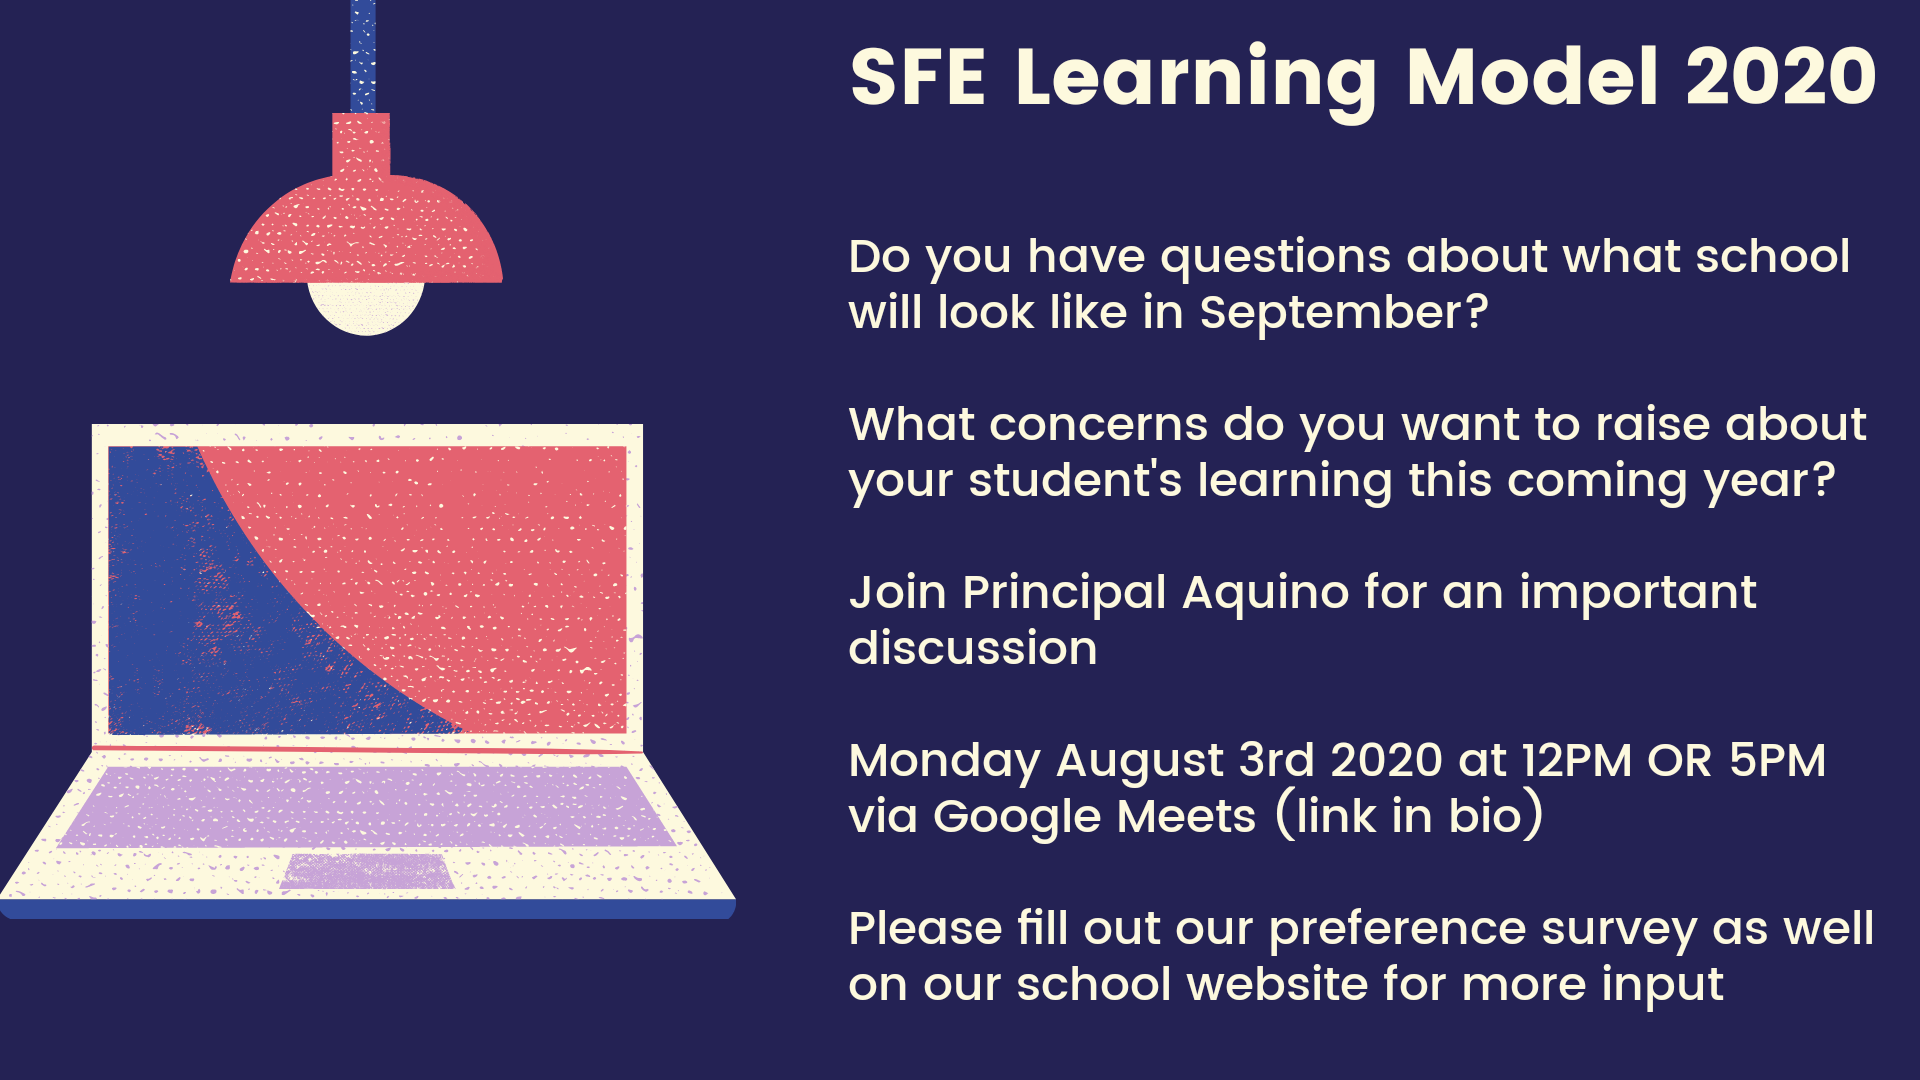 Meet with the School For Excellence Principal about the school's learning model for 2020. Monday, August 3rd, 2020, at 12 pm or 5 pm.